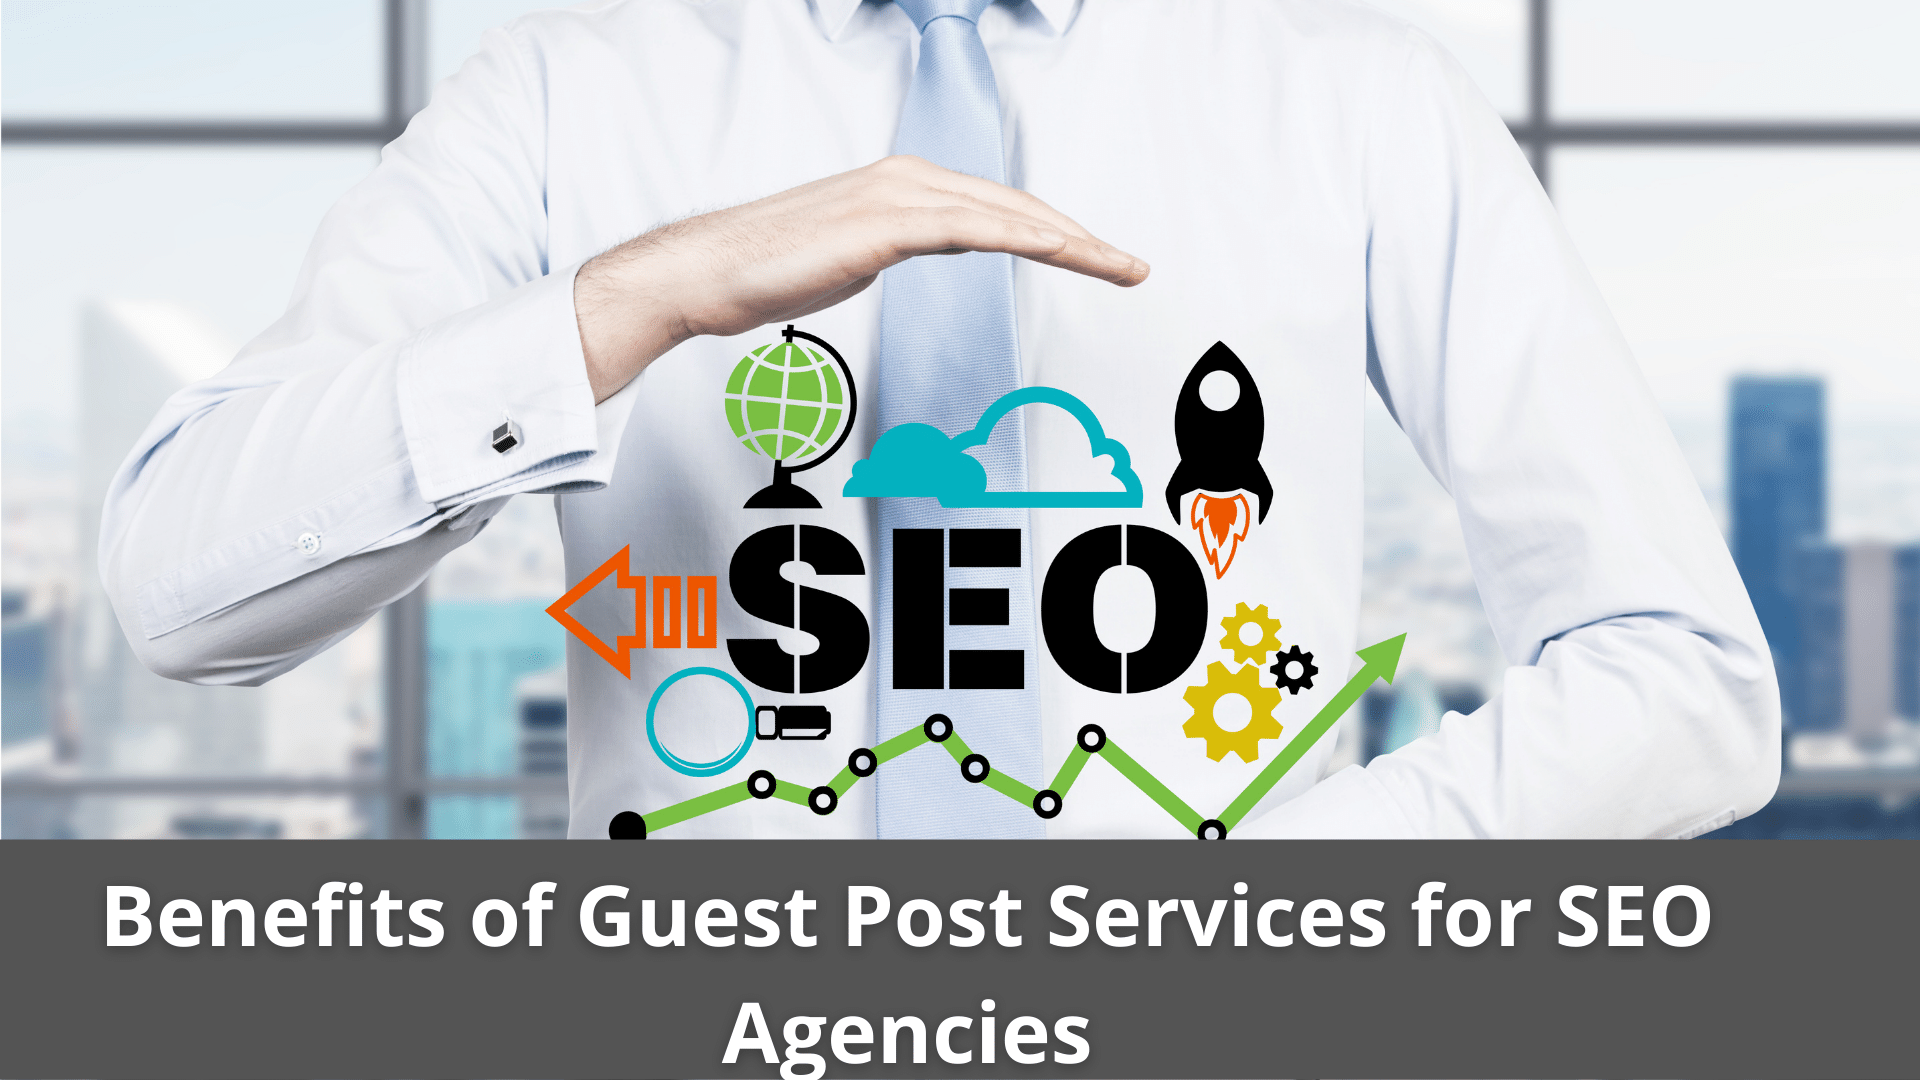 Benefits of Guest Post Services for SEO Agencies 41